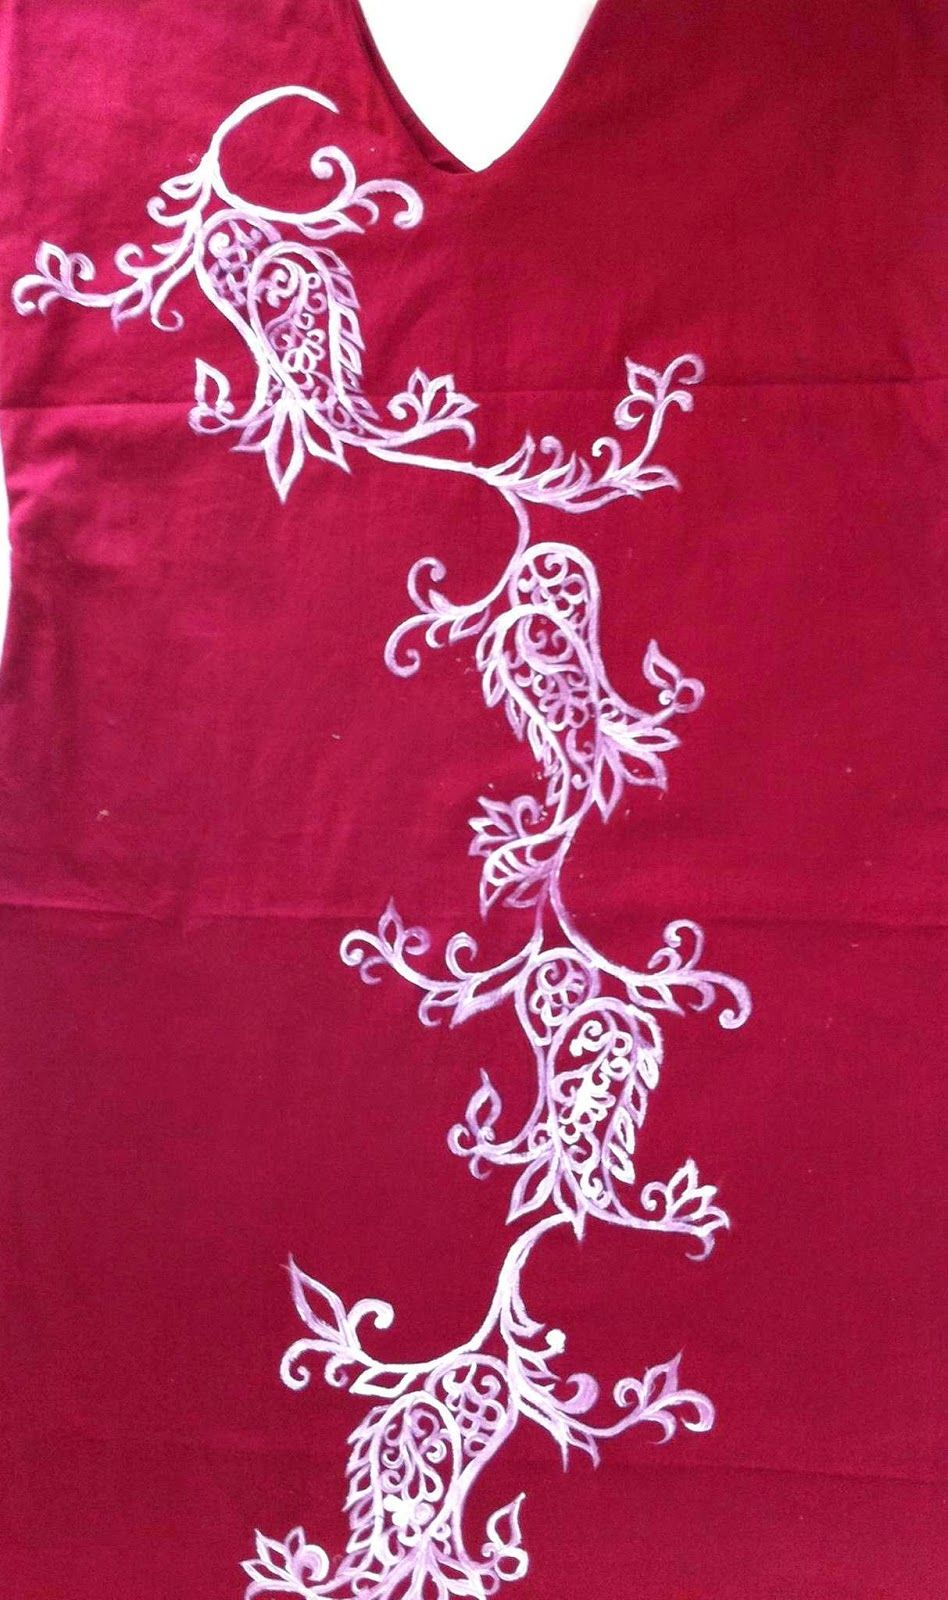 Shirt design with fabric paint - Painting And Embroidery Design For Free